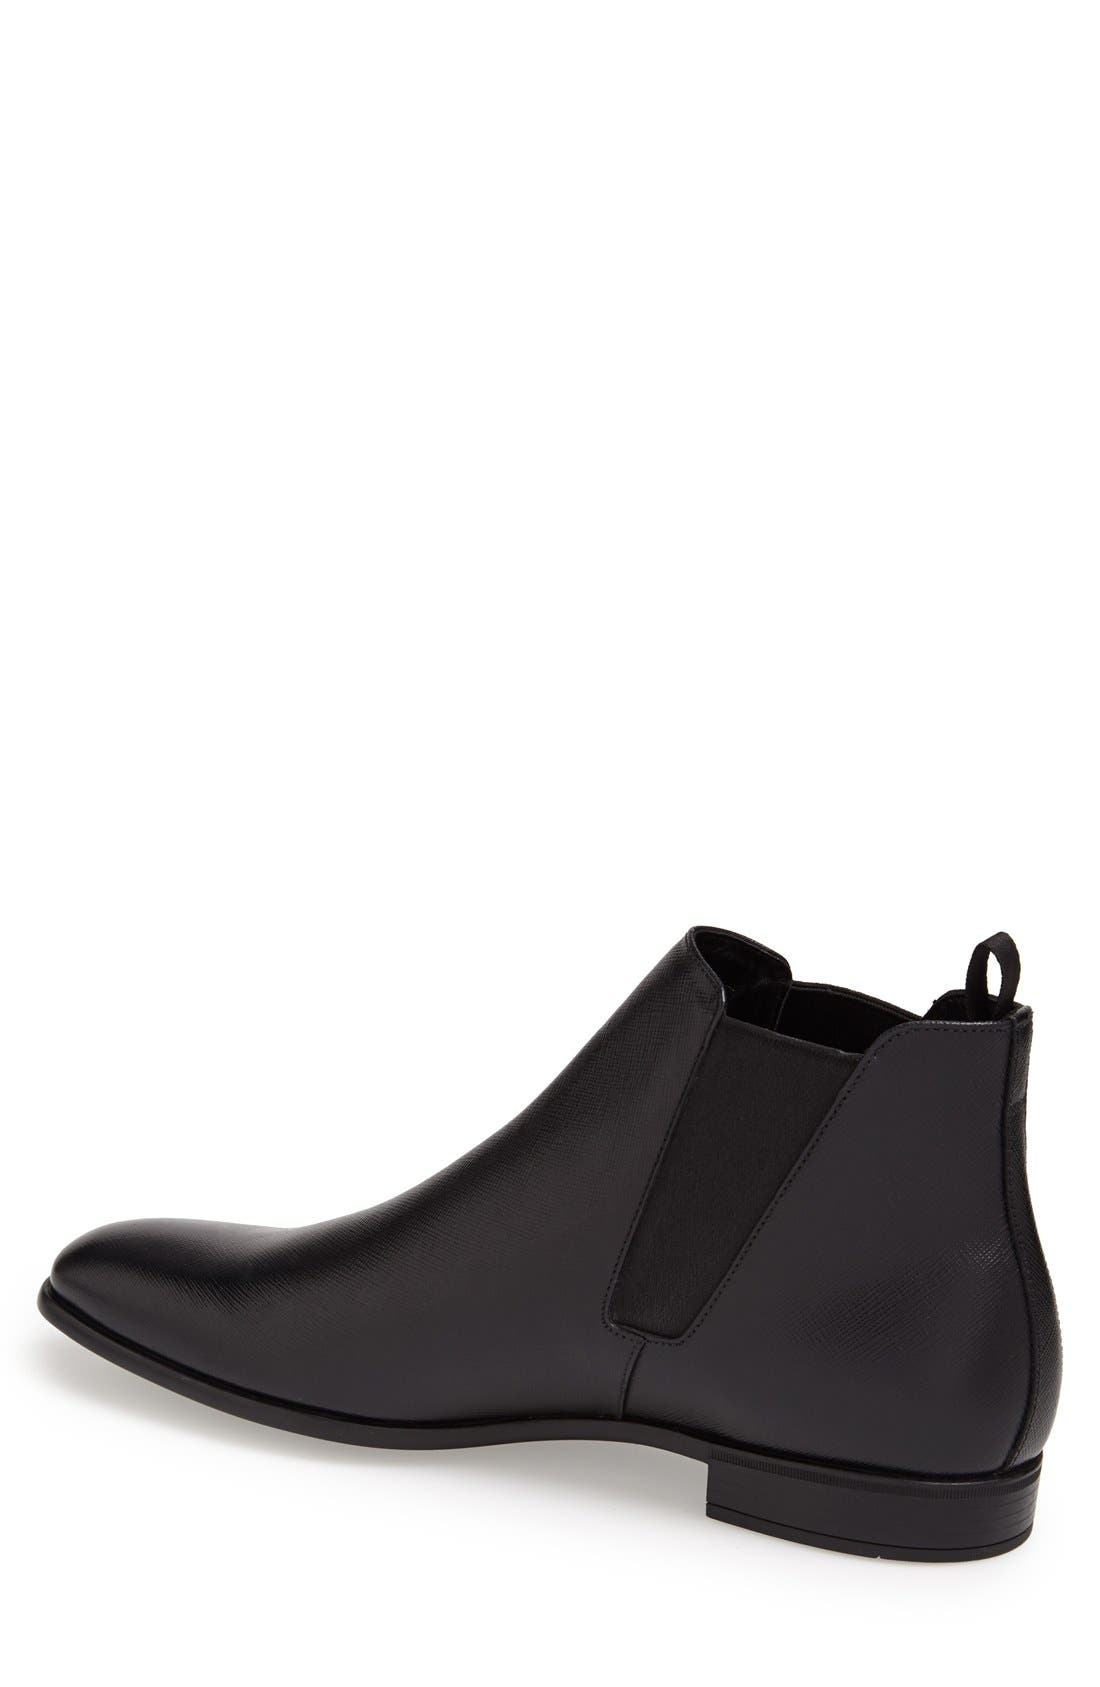 Saffiano Leather Chelsea Boot,                             Alternate thumbnail 2, color,                             BLACK